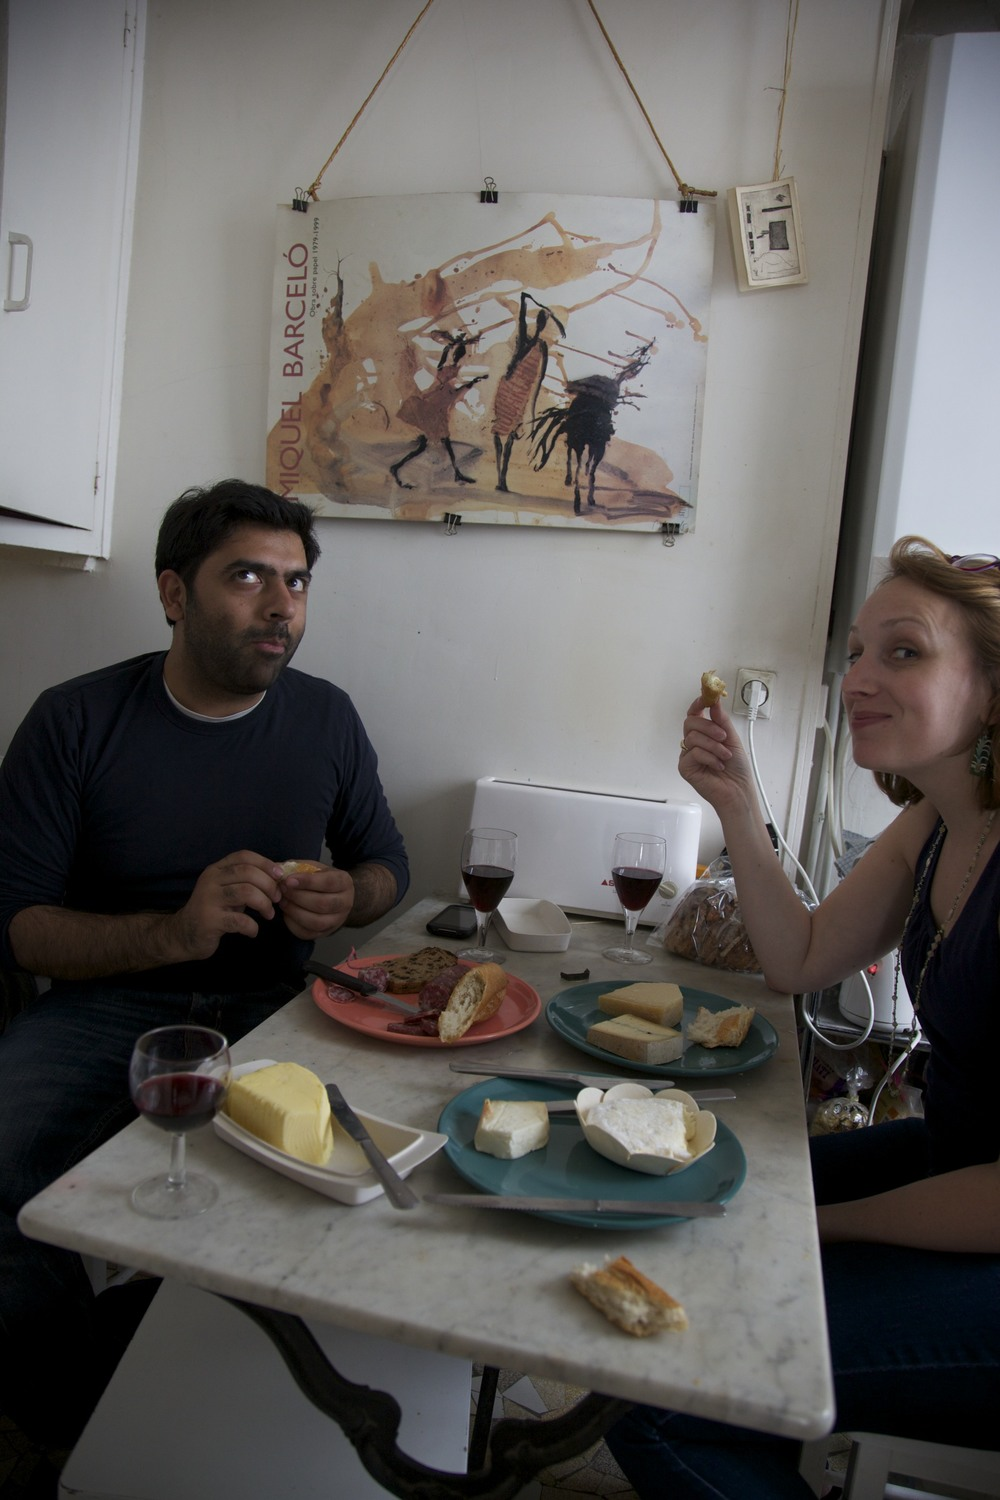 Enjoying bread, wine, cheese, and sausage with Rishi and Julie in the apartment.